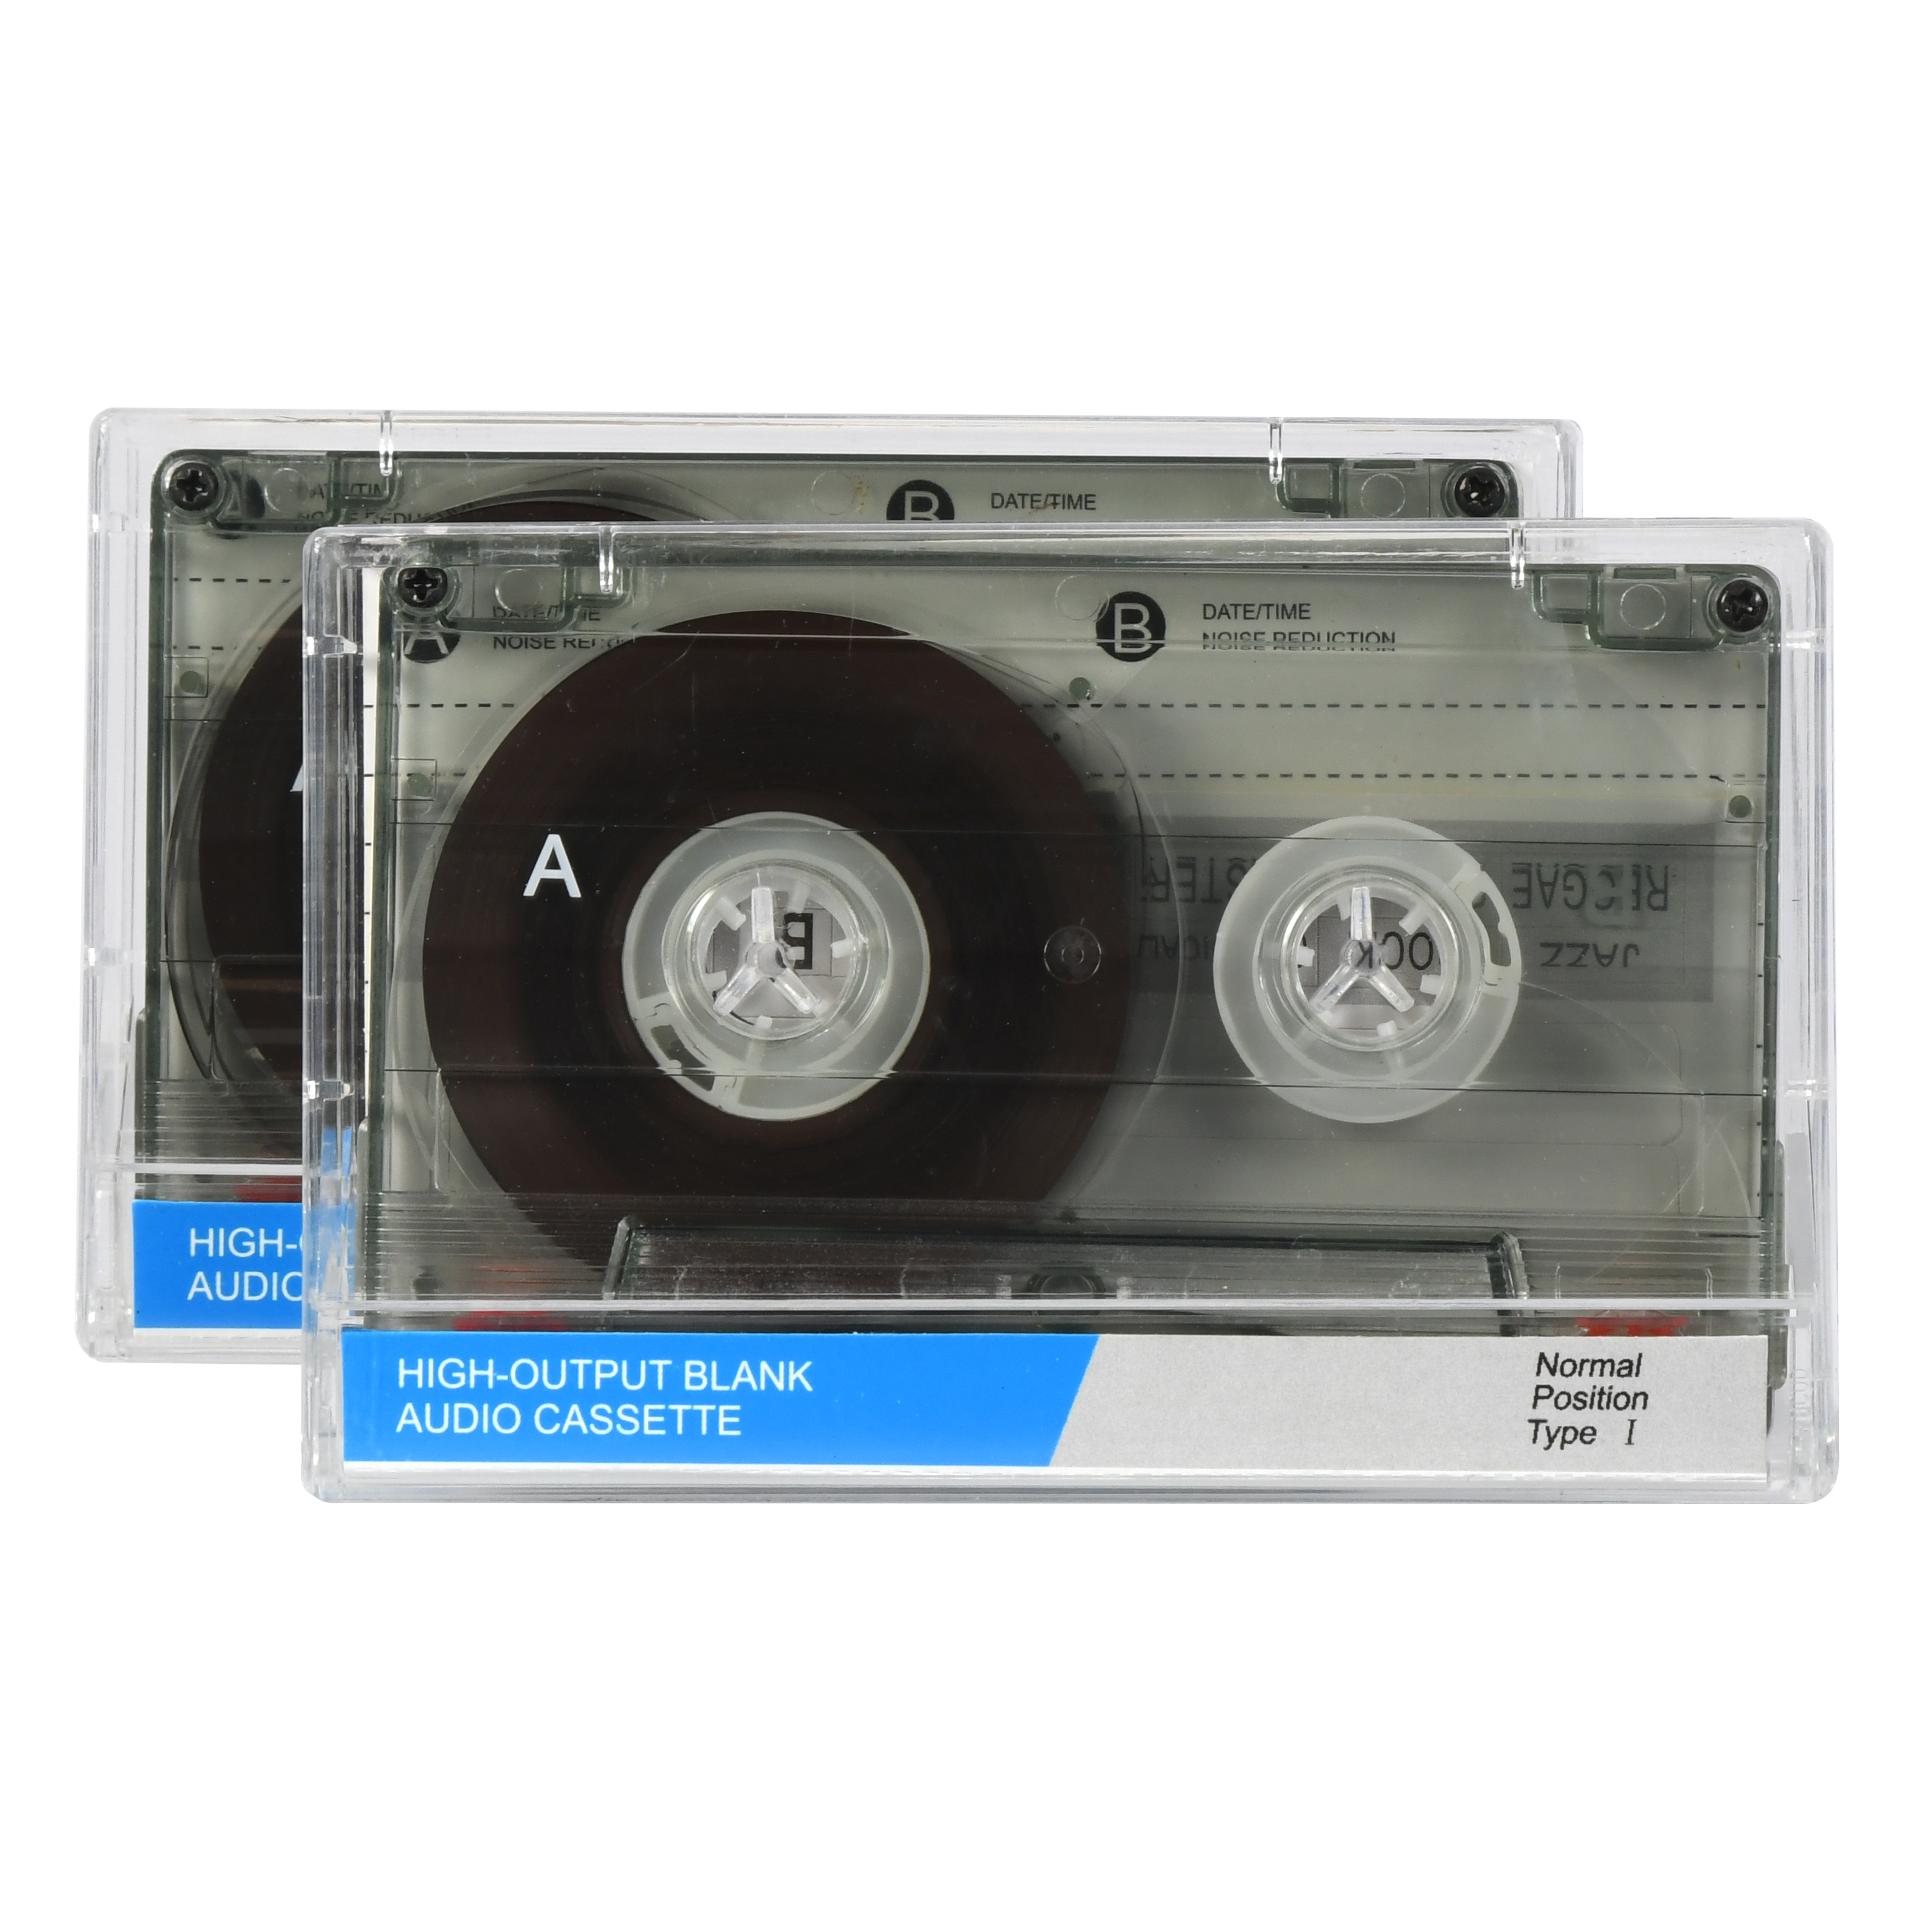 Onn 90-Minute Audio Cassette Blank Tapes, 2-Pack